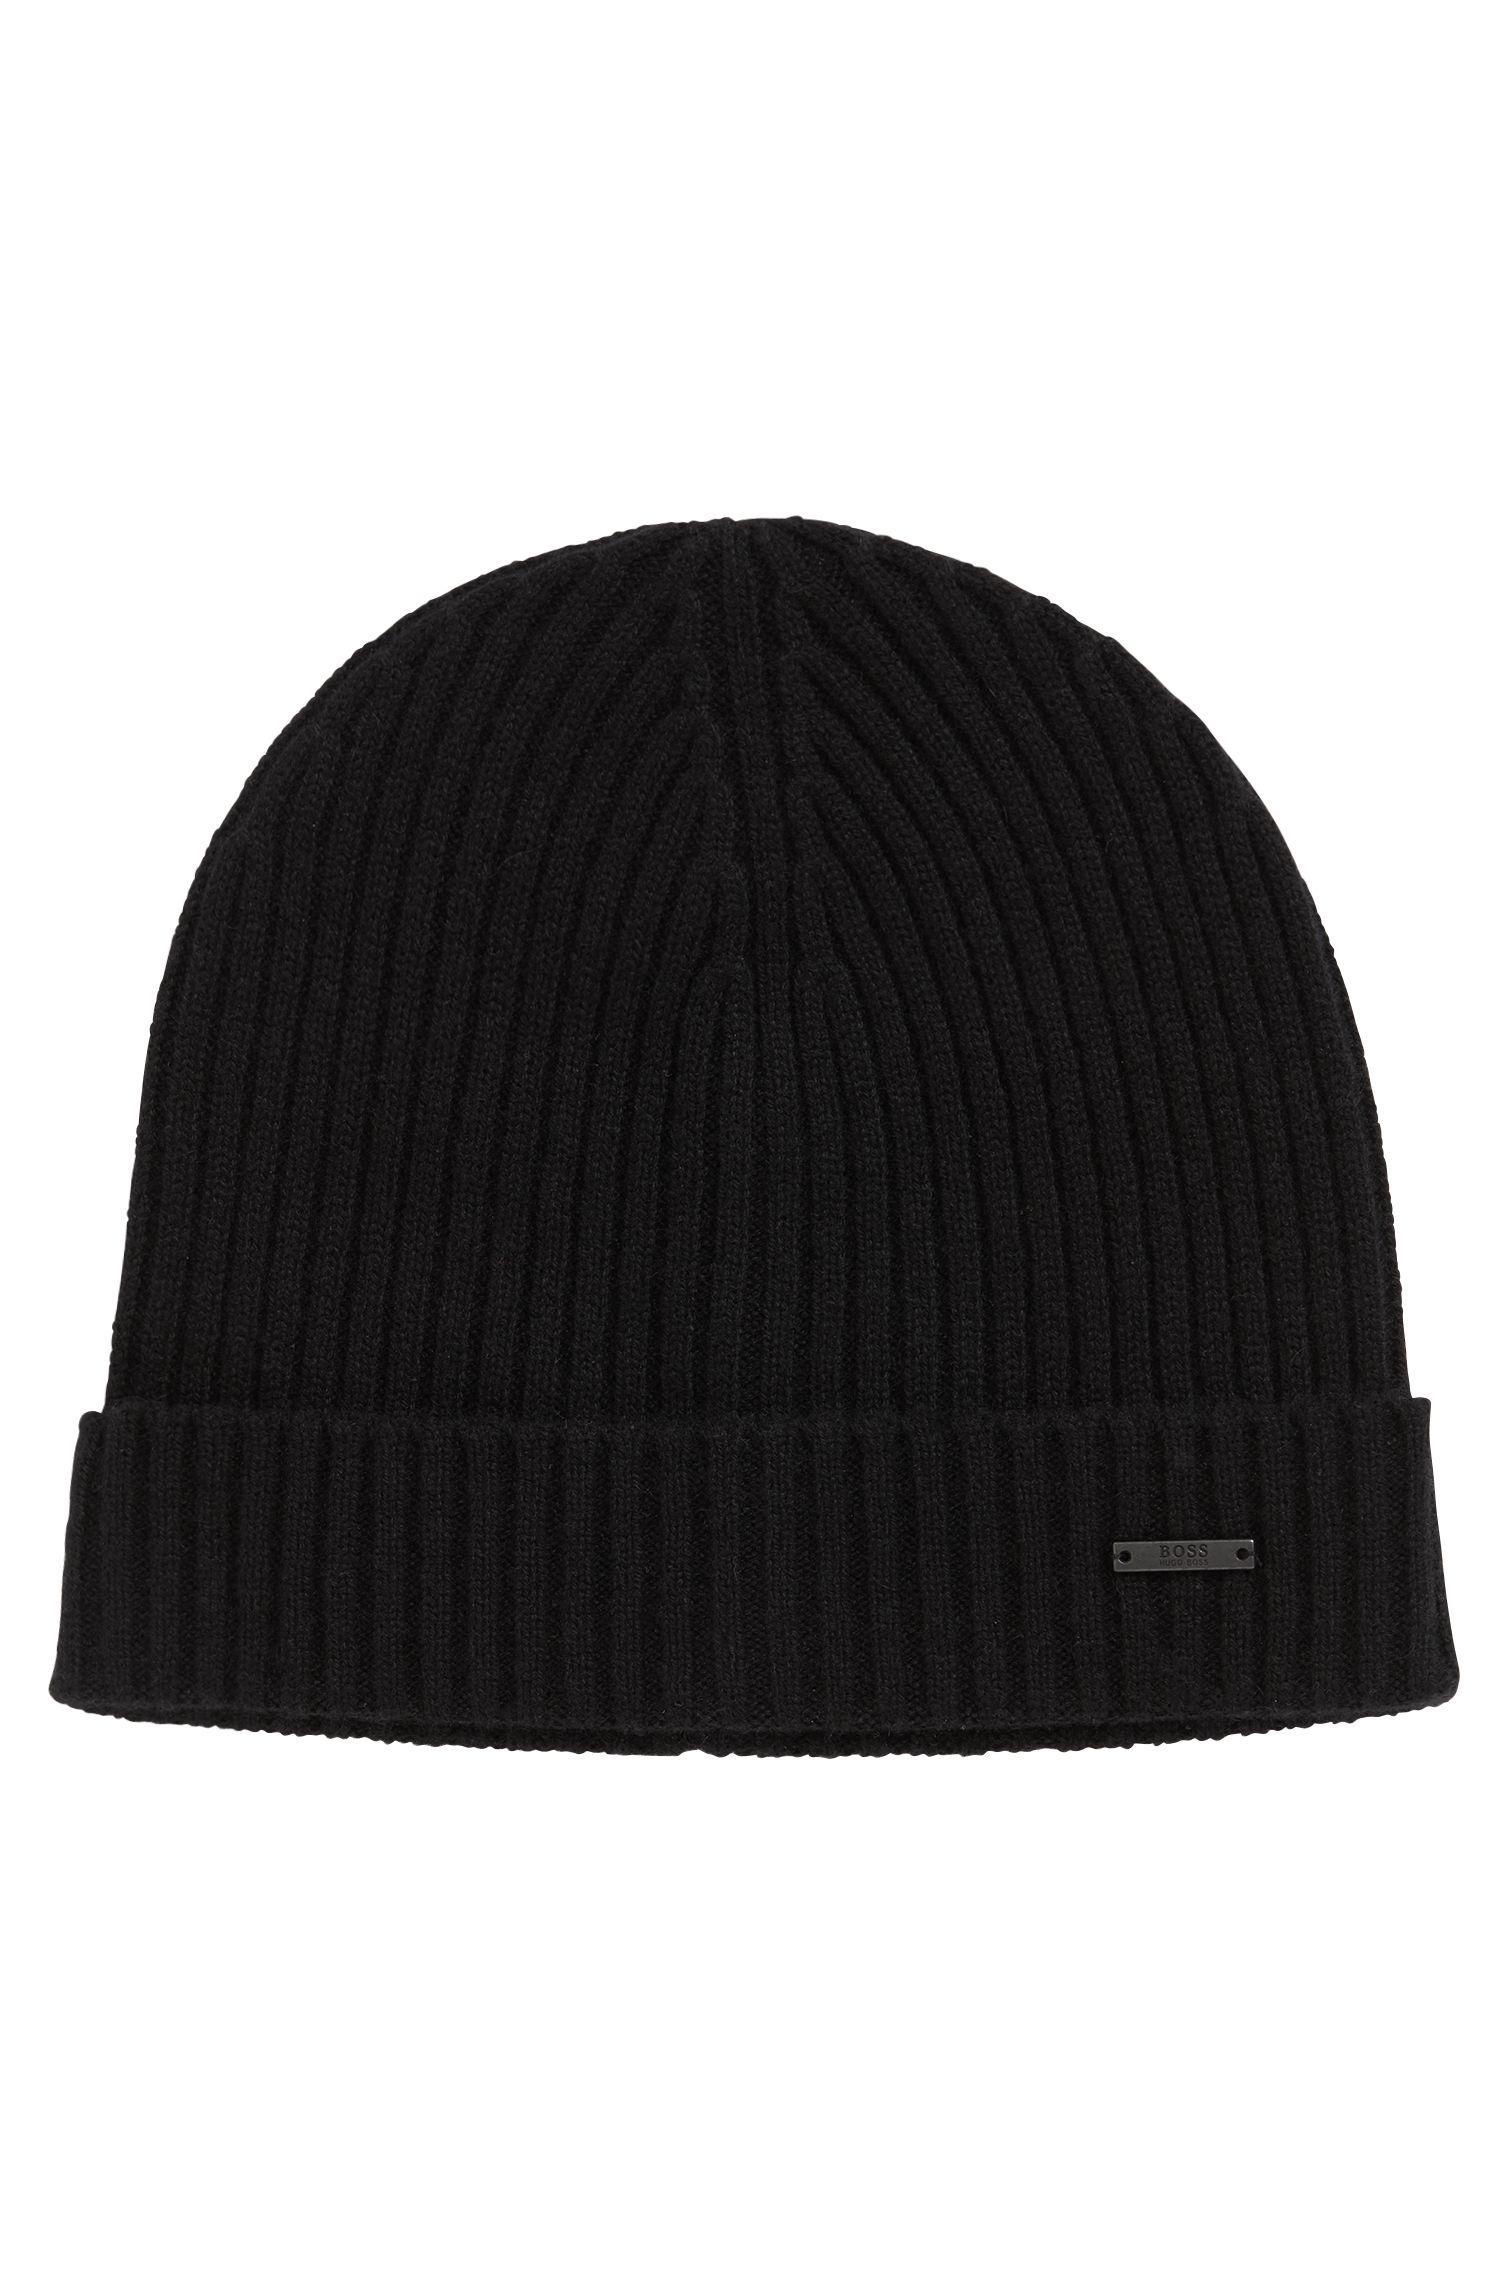 BOSS - Black Ribbed Beanie And Scarf Set In Pure Cashmere for Men - Lyst.  View fullscreen 8363e9205086